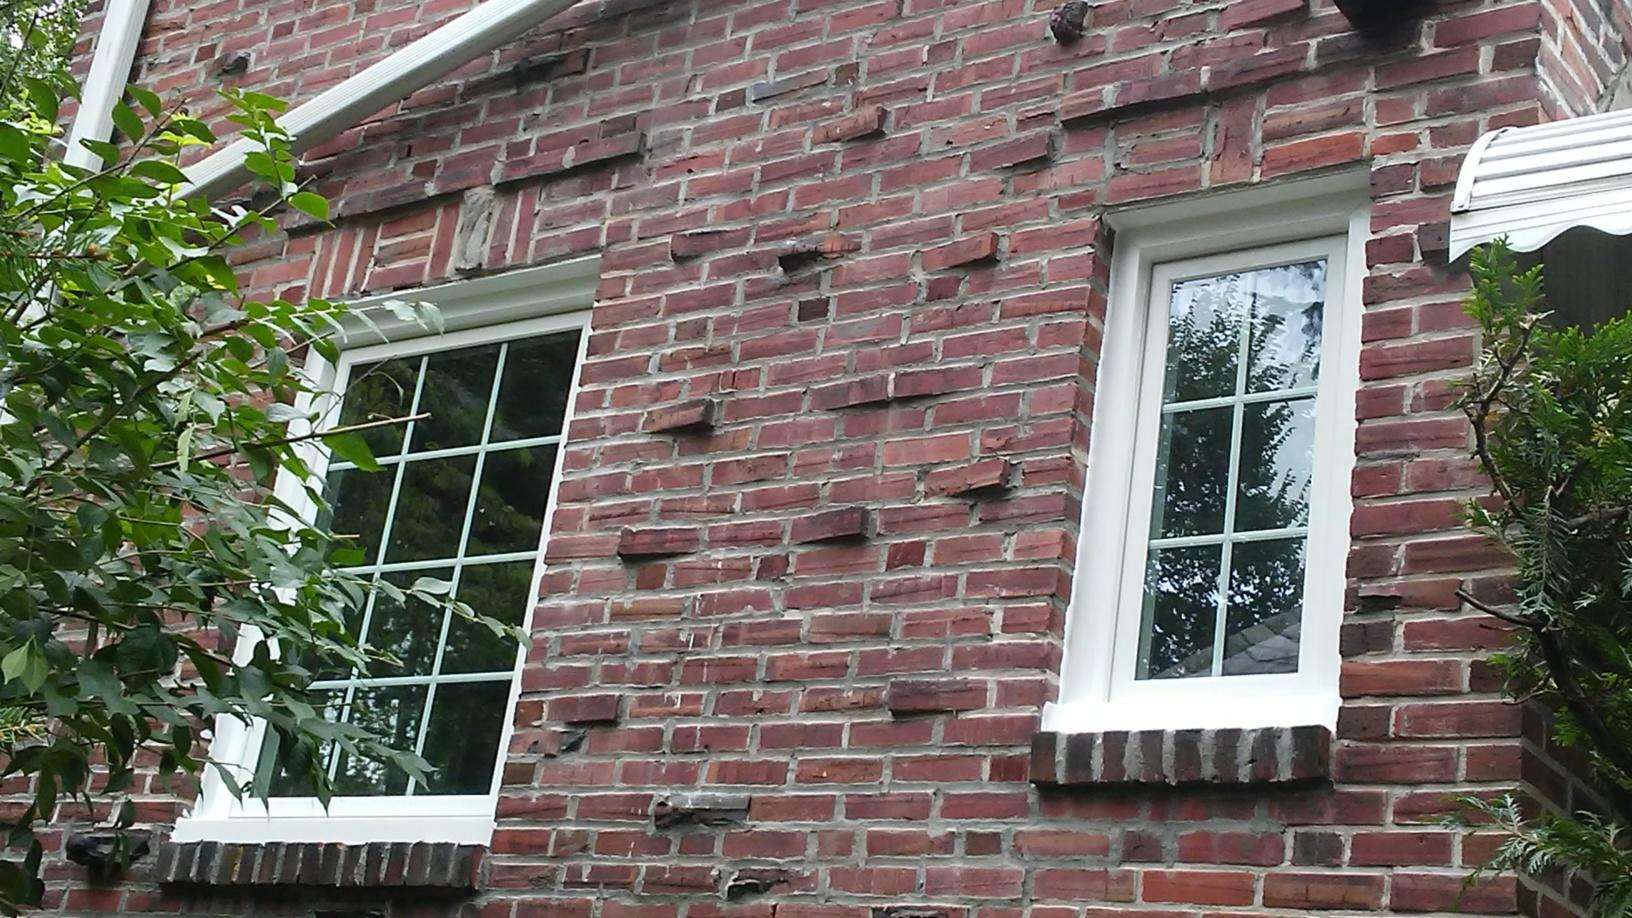 Marvin Infinity Windows with White Finish Installed on Brick Siding